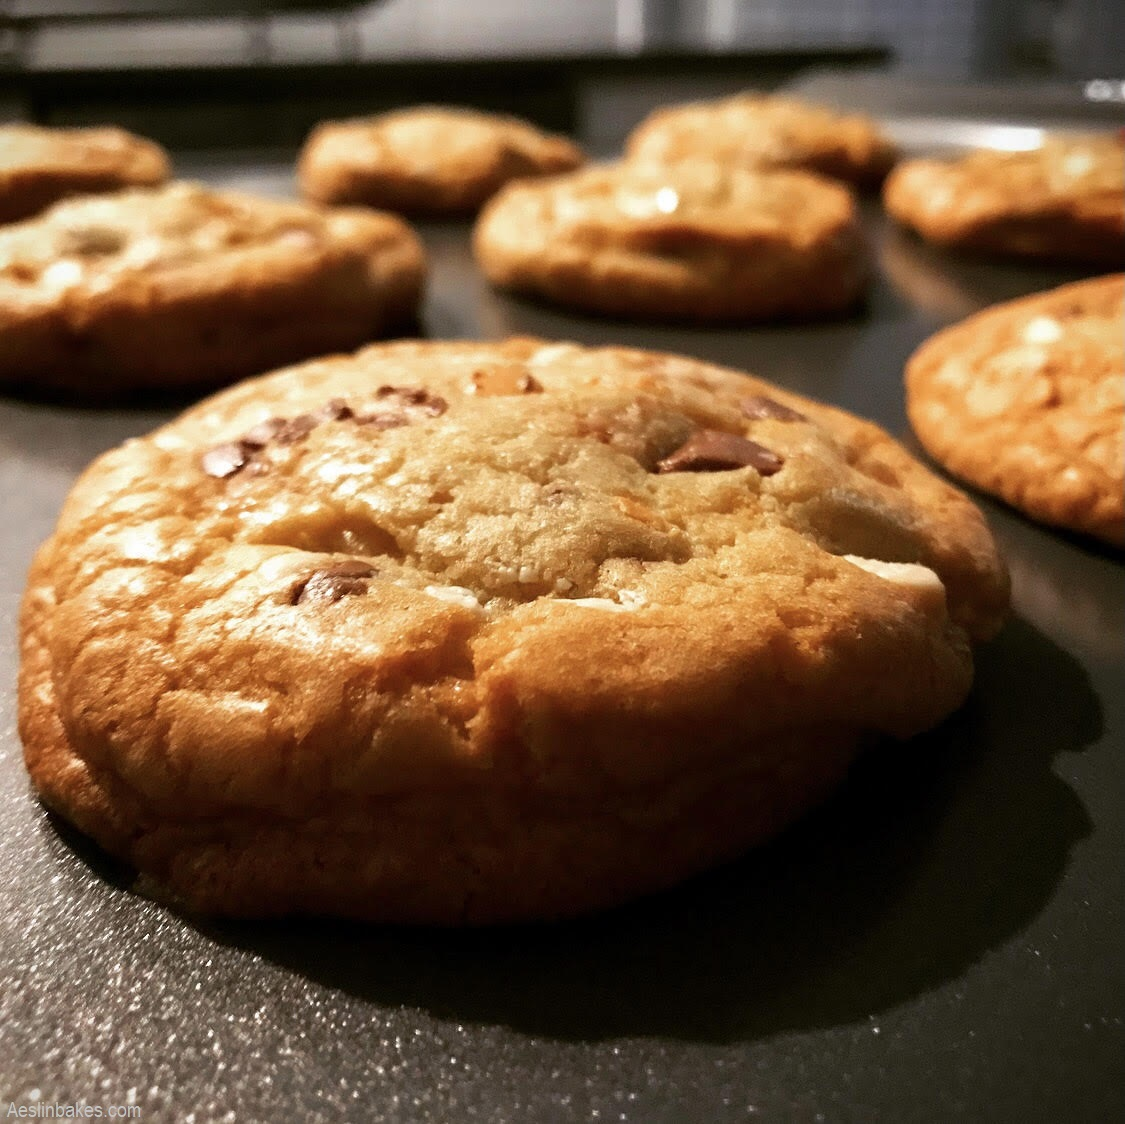 Soft & Chewy Chocolate Chip Cookies on pan front